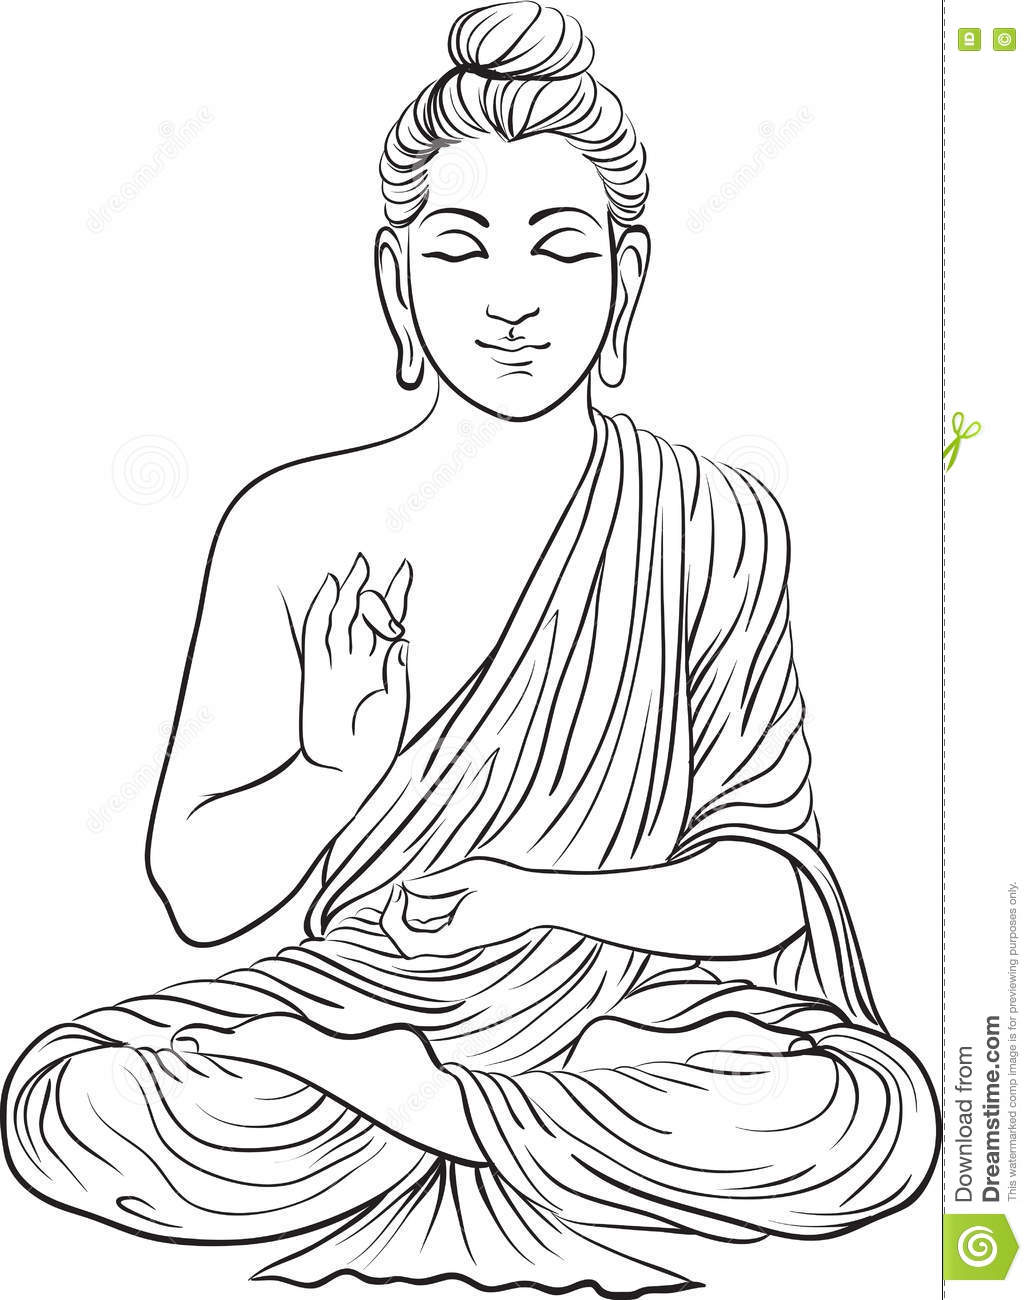 Drawing of a buddha statue stock vector illustration of asian 82217153 - Dessin de bouddha gratuit ...